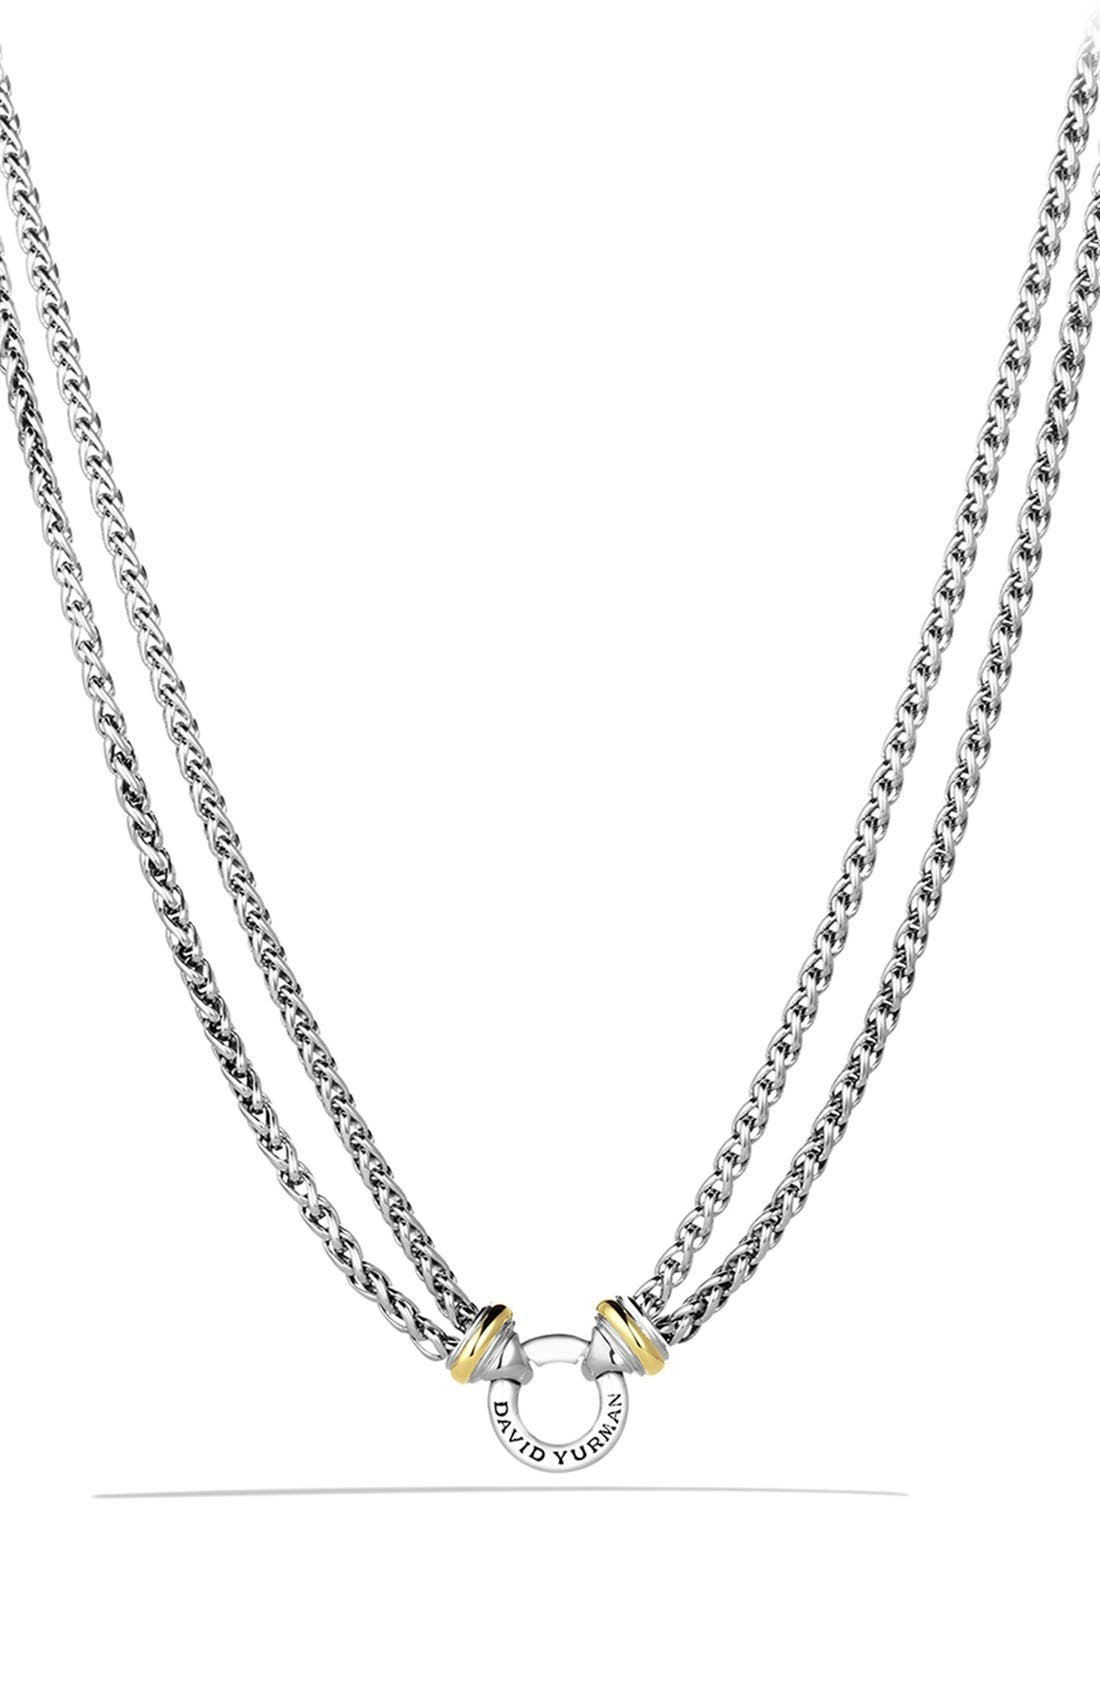 Main Image - David Yurman 'Double Wheat' Chain Necklace with Gold